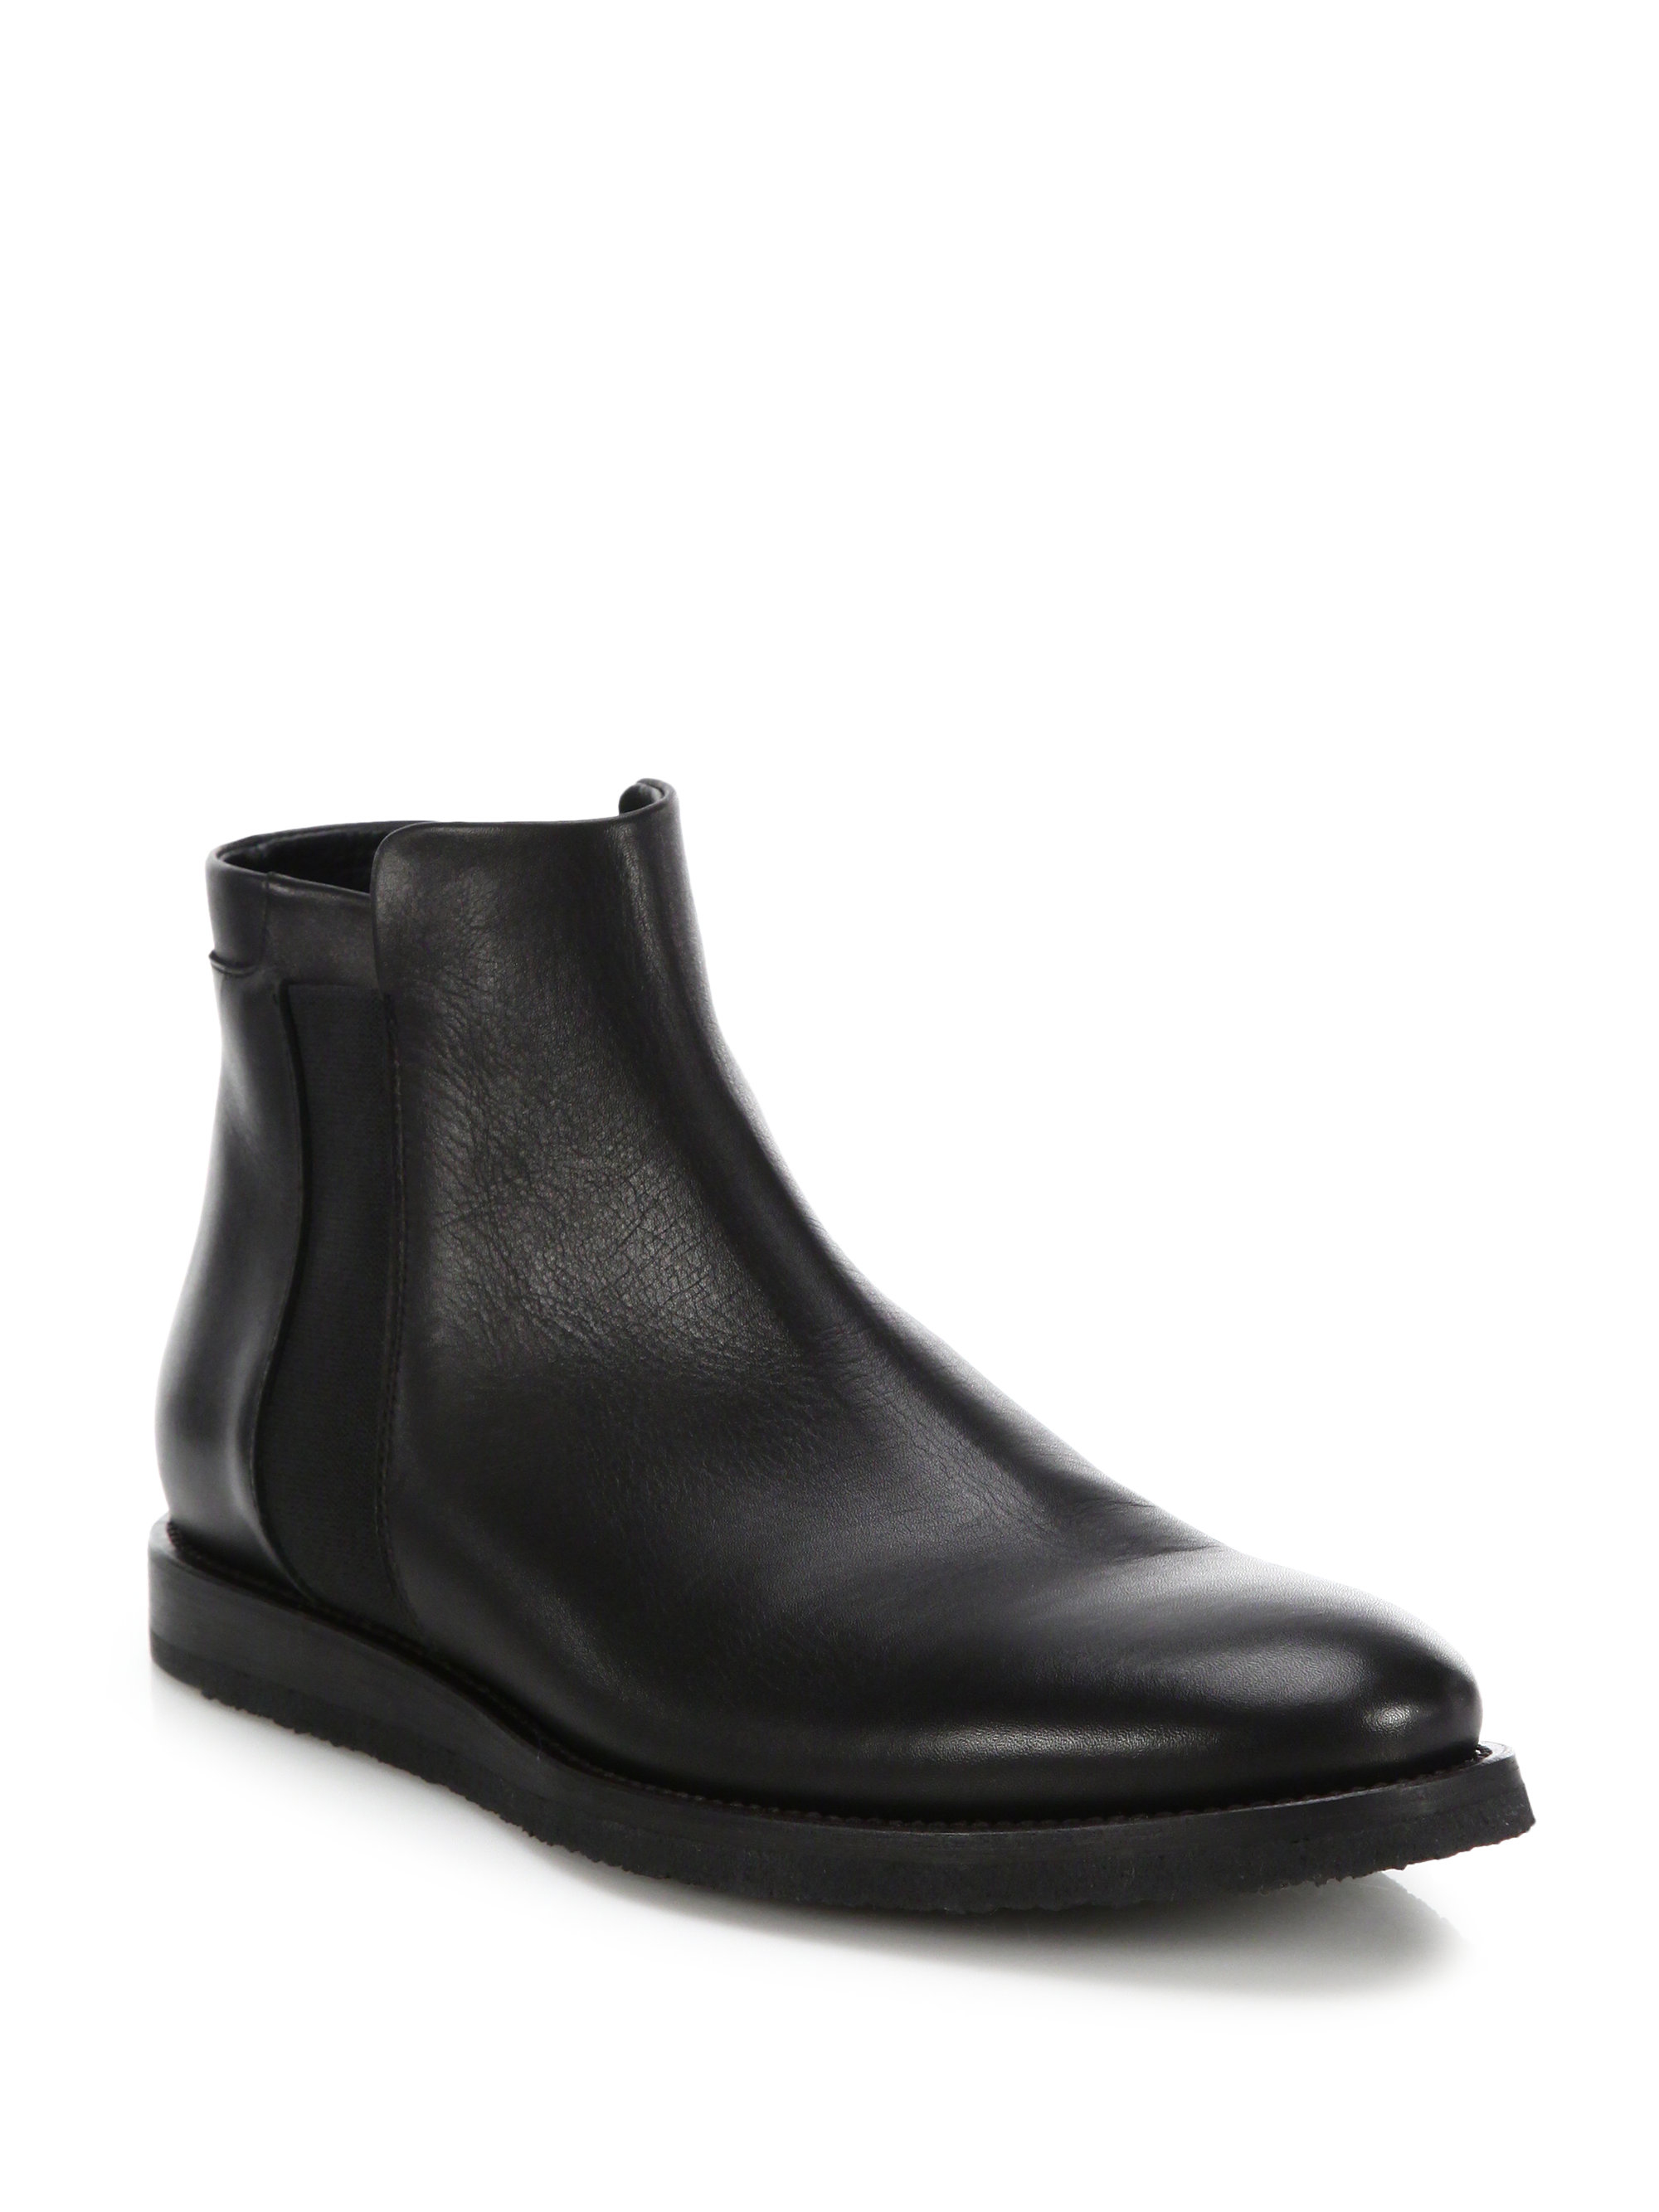 lyst vince hayes leather chelsea boots in black for men. Black Bedroom Furniture Sets. Home Design Ideas